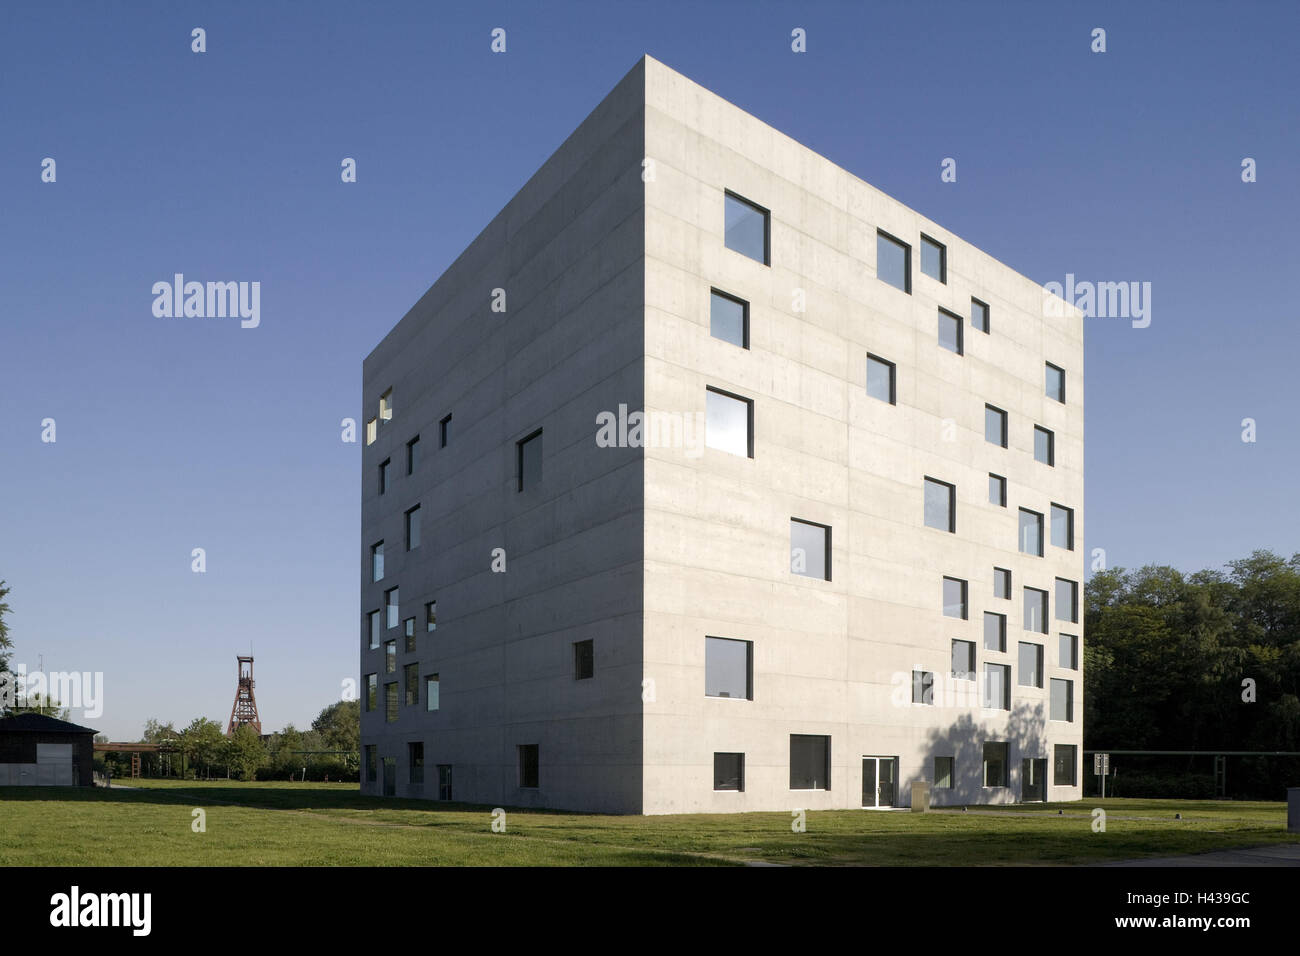 Germany, North Rhine-Westphalia, food, School management and design, architecture, outside, town, inch club, area, - Stock Image